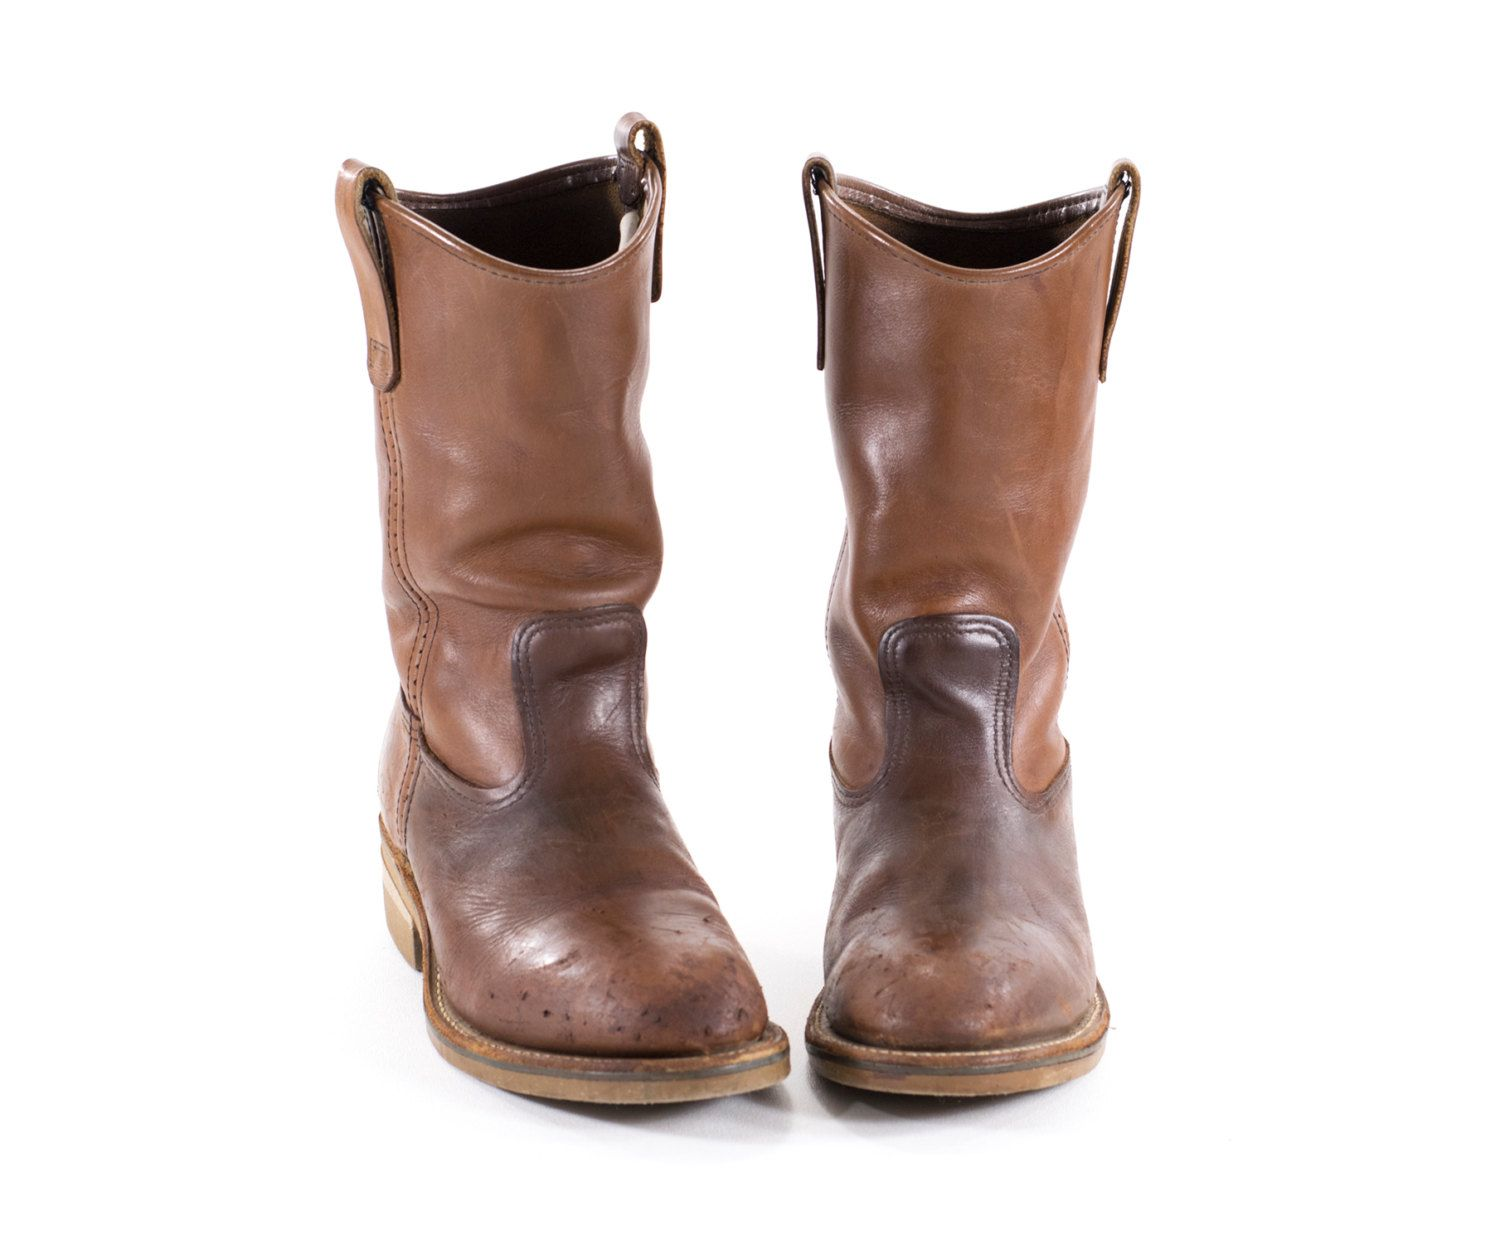 RED WING Boots Vintage Work Boots Brown Leather Western Cowboy ...